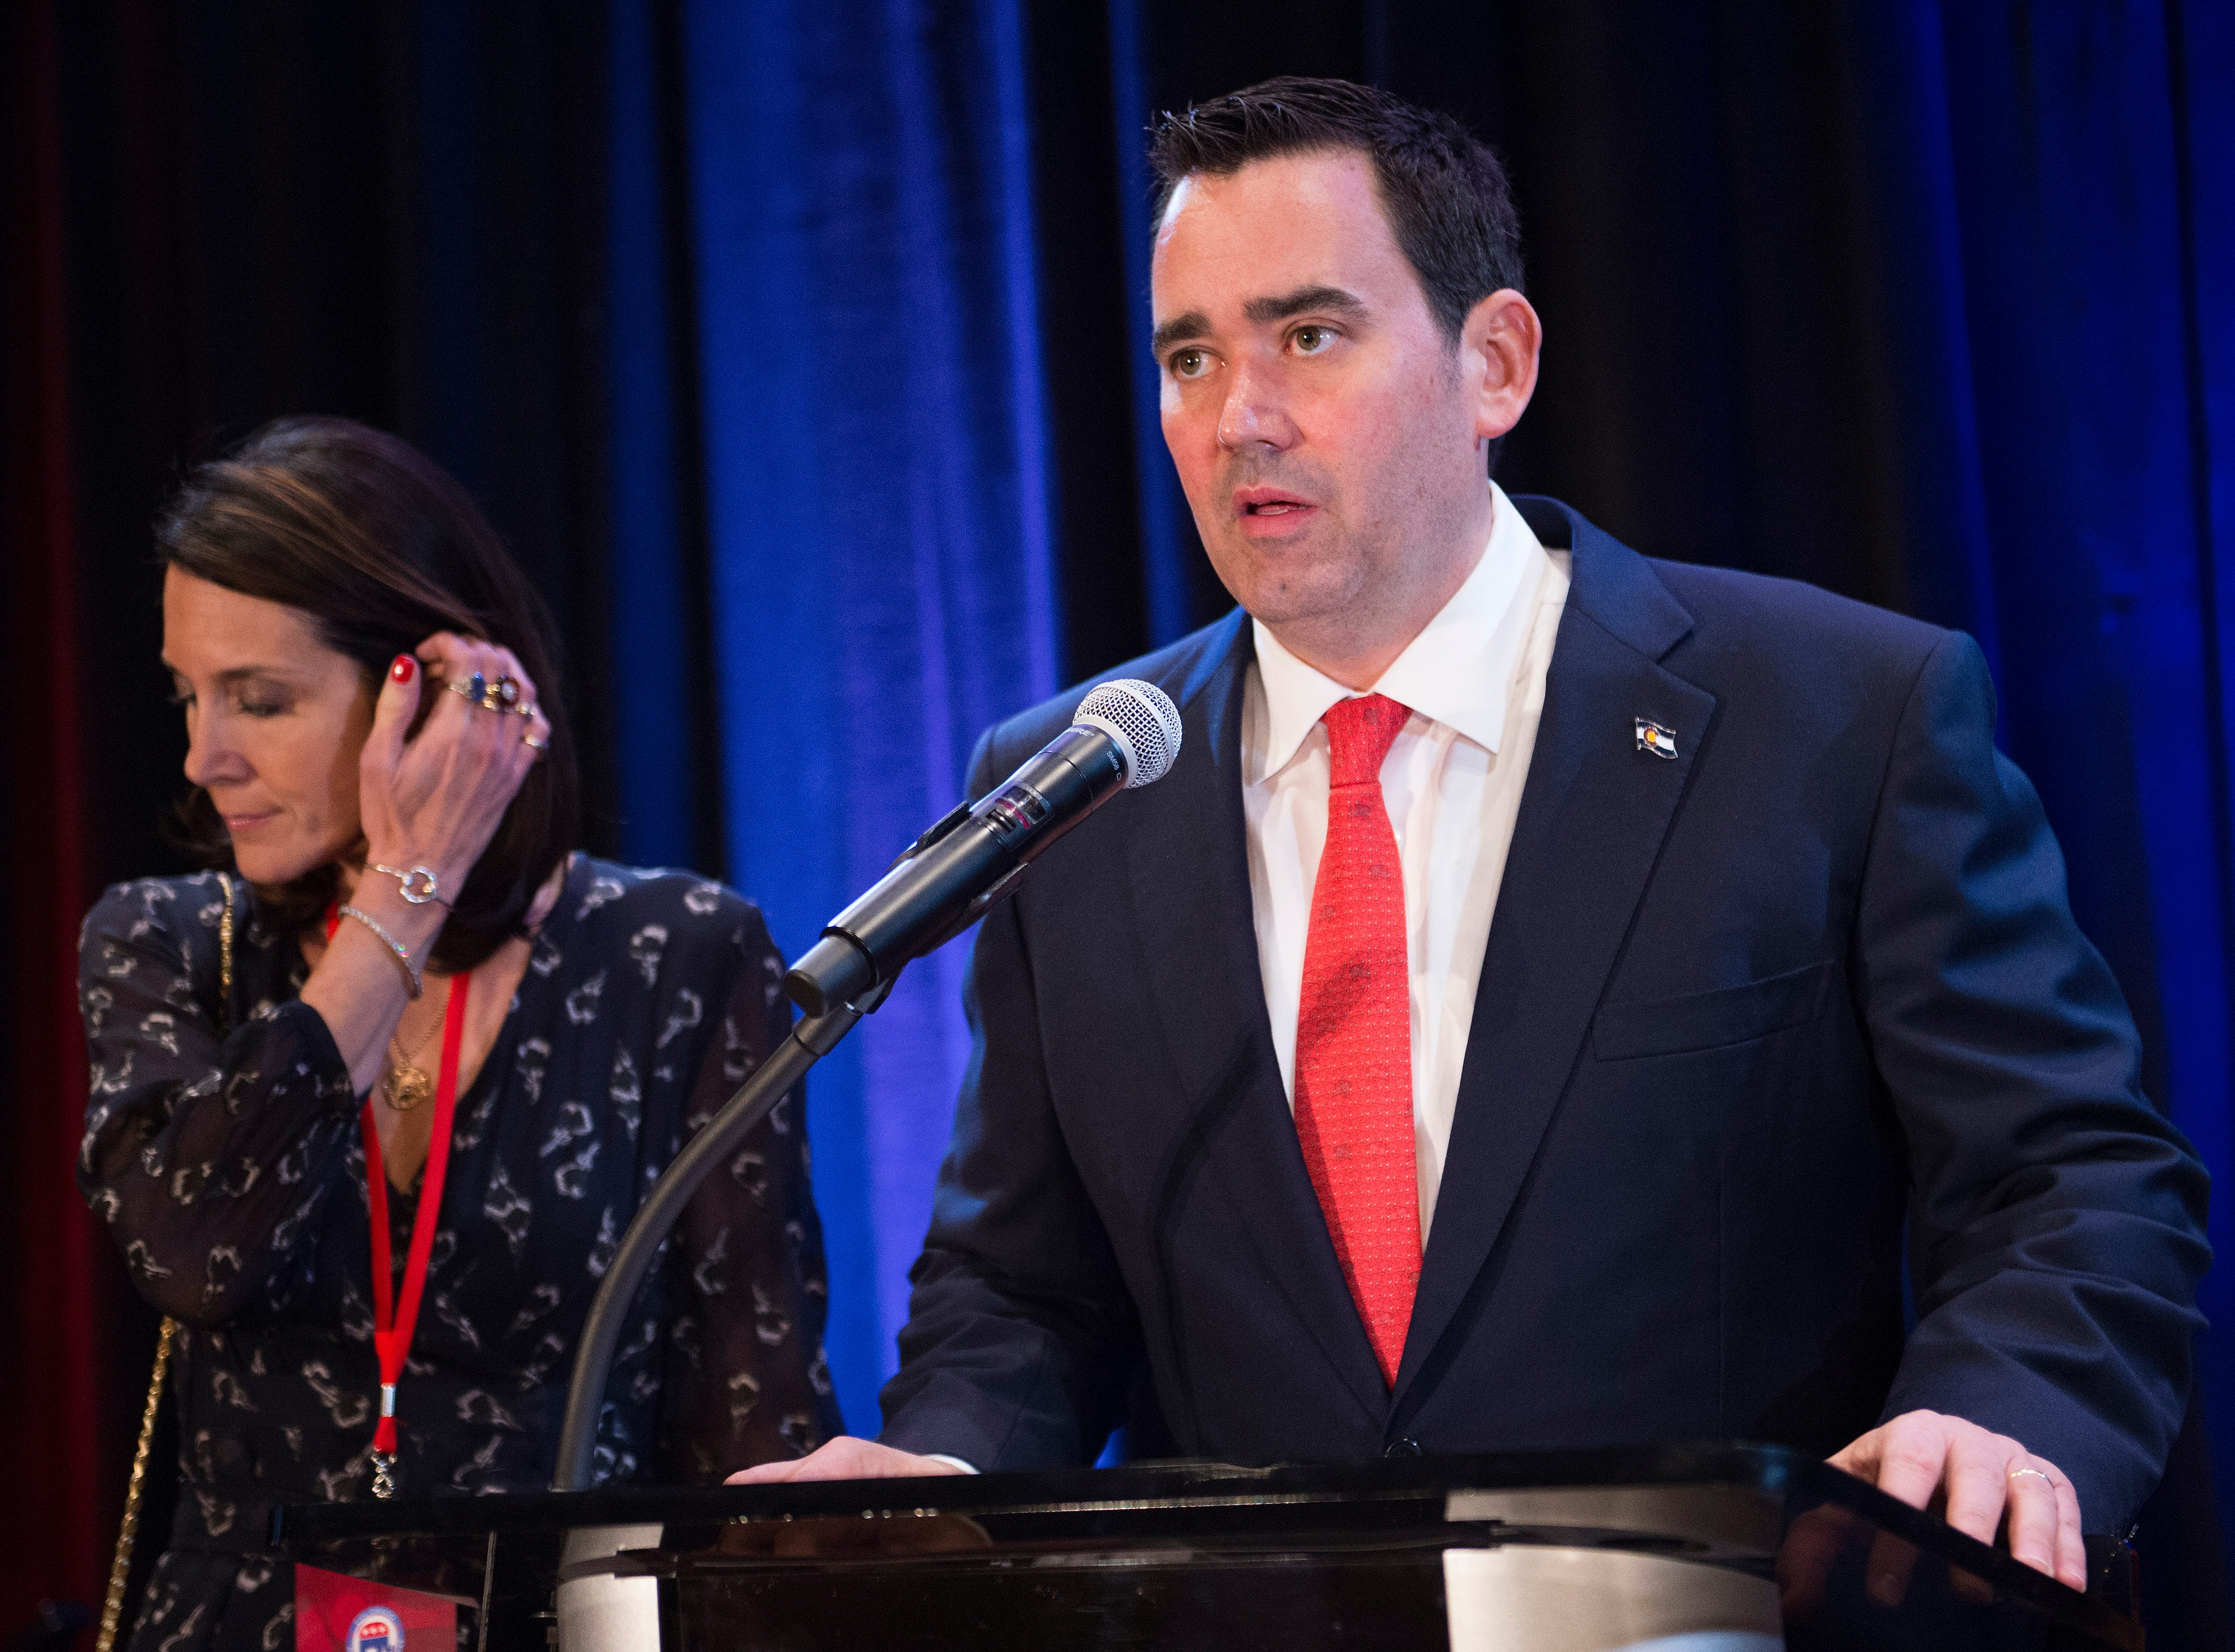 Republican candidate for Colorado governor Walker Stapleton gives a concession speech with his wife, Jenna, at his side during a Colorado GOP watch party at the Denver Marriott South at Park Meadows in Lone Tree on Election Day, Tuesday, November 6, 2018.